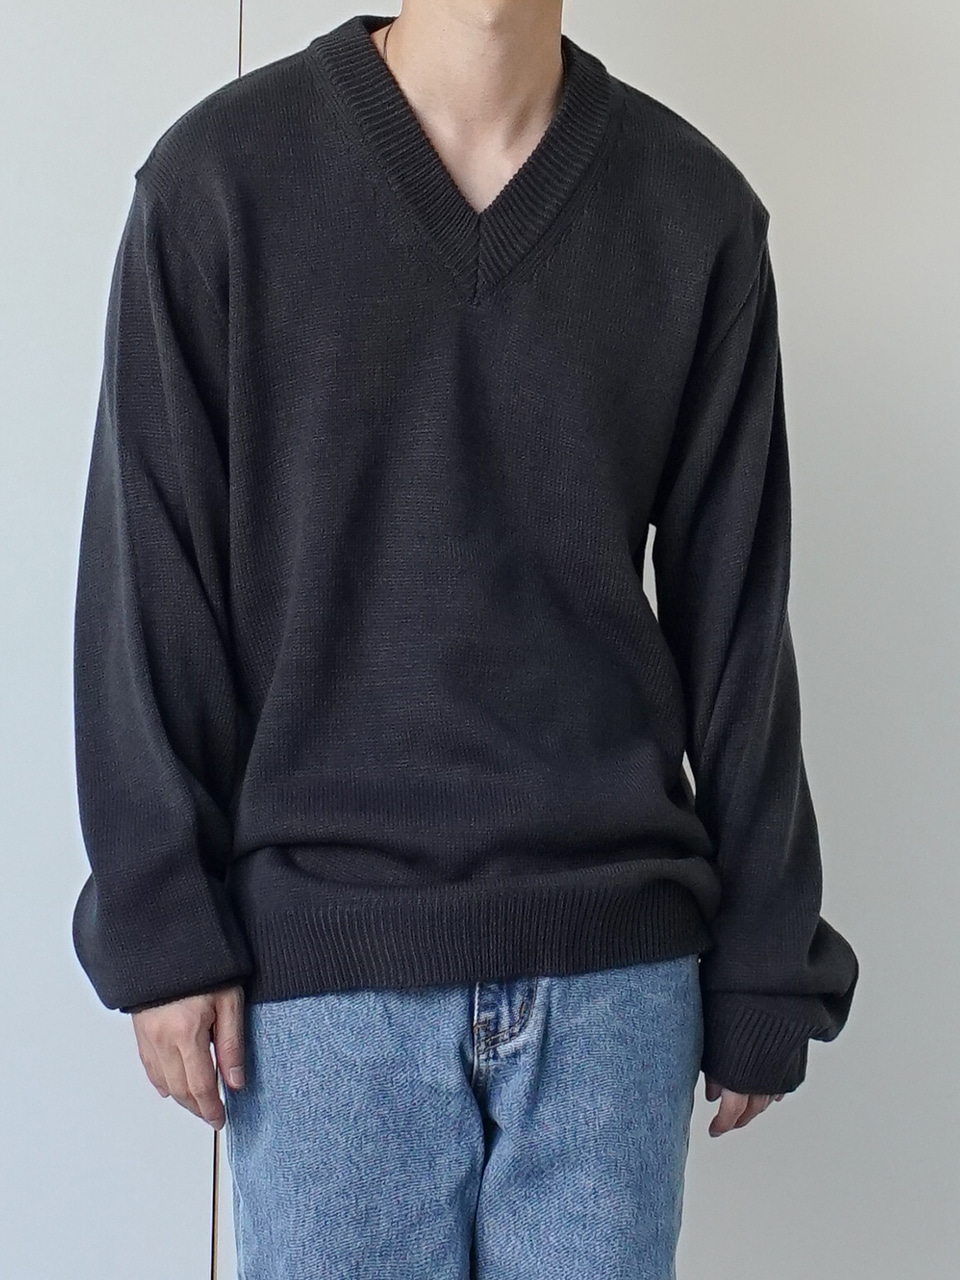 Frank V Neck Knit (4color)